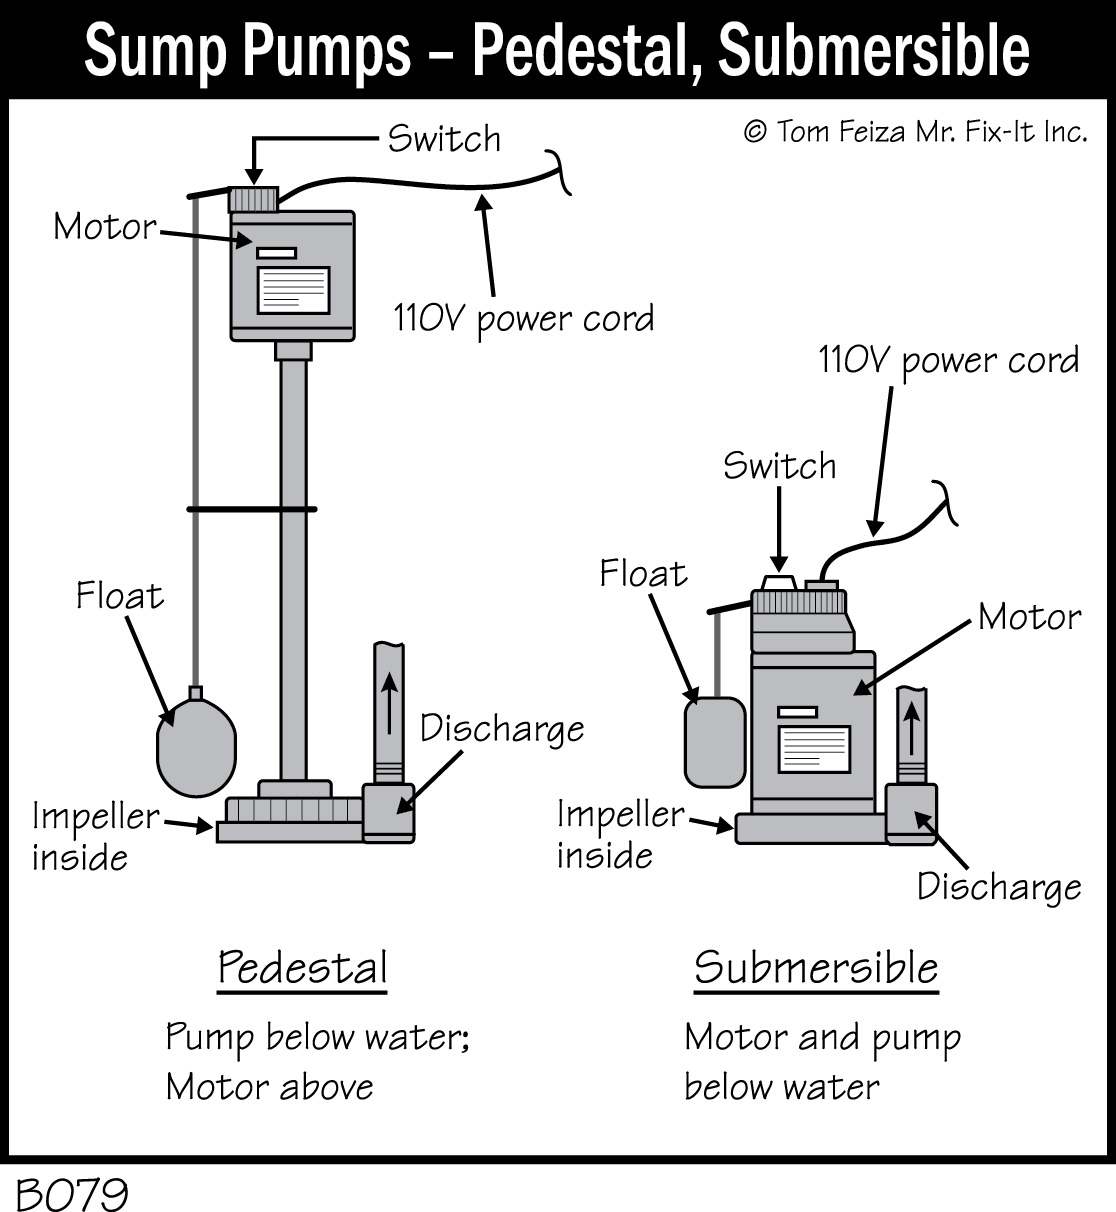 hight resolution of b079 sump pumps pedestal submersible accurate basement submersible sump pump diagram automatic sump pump float switch